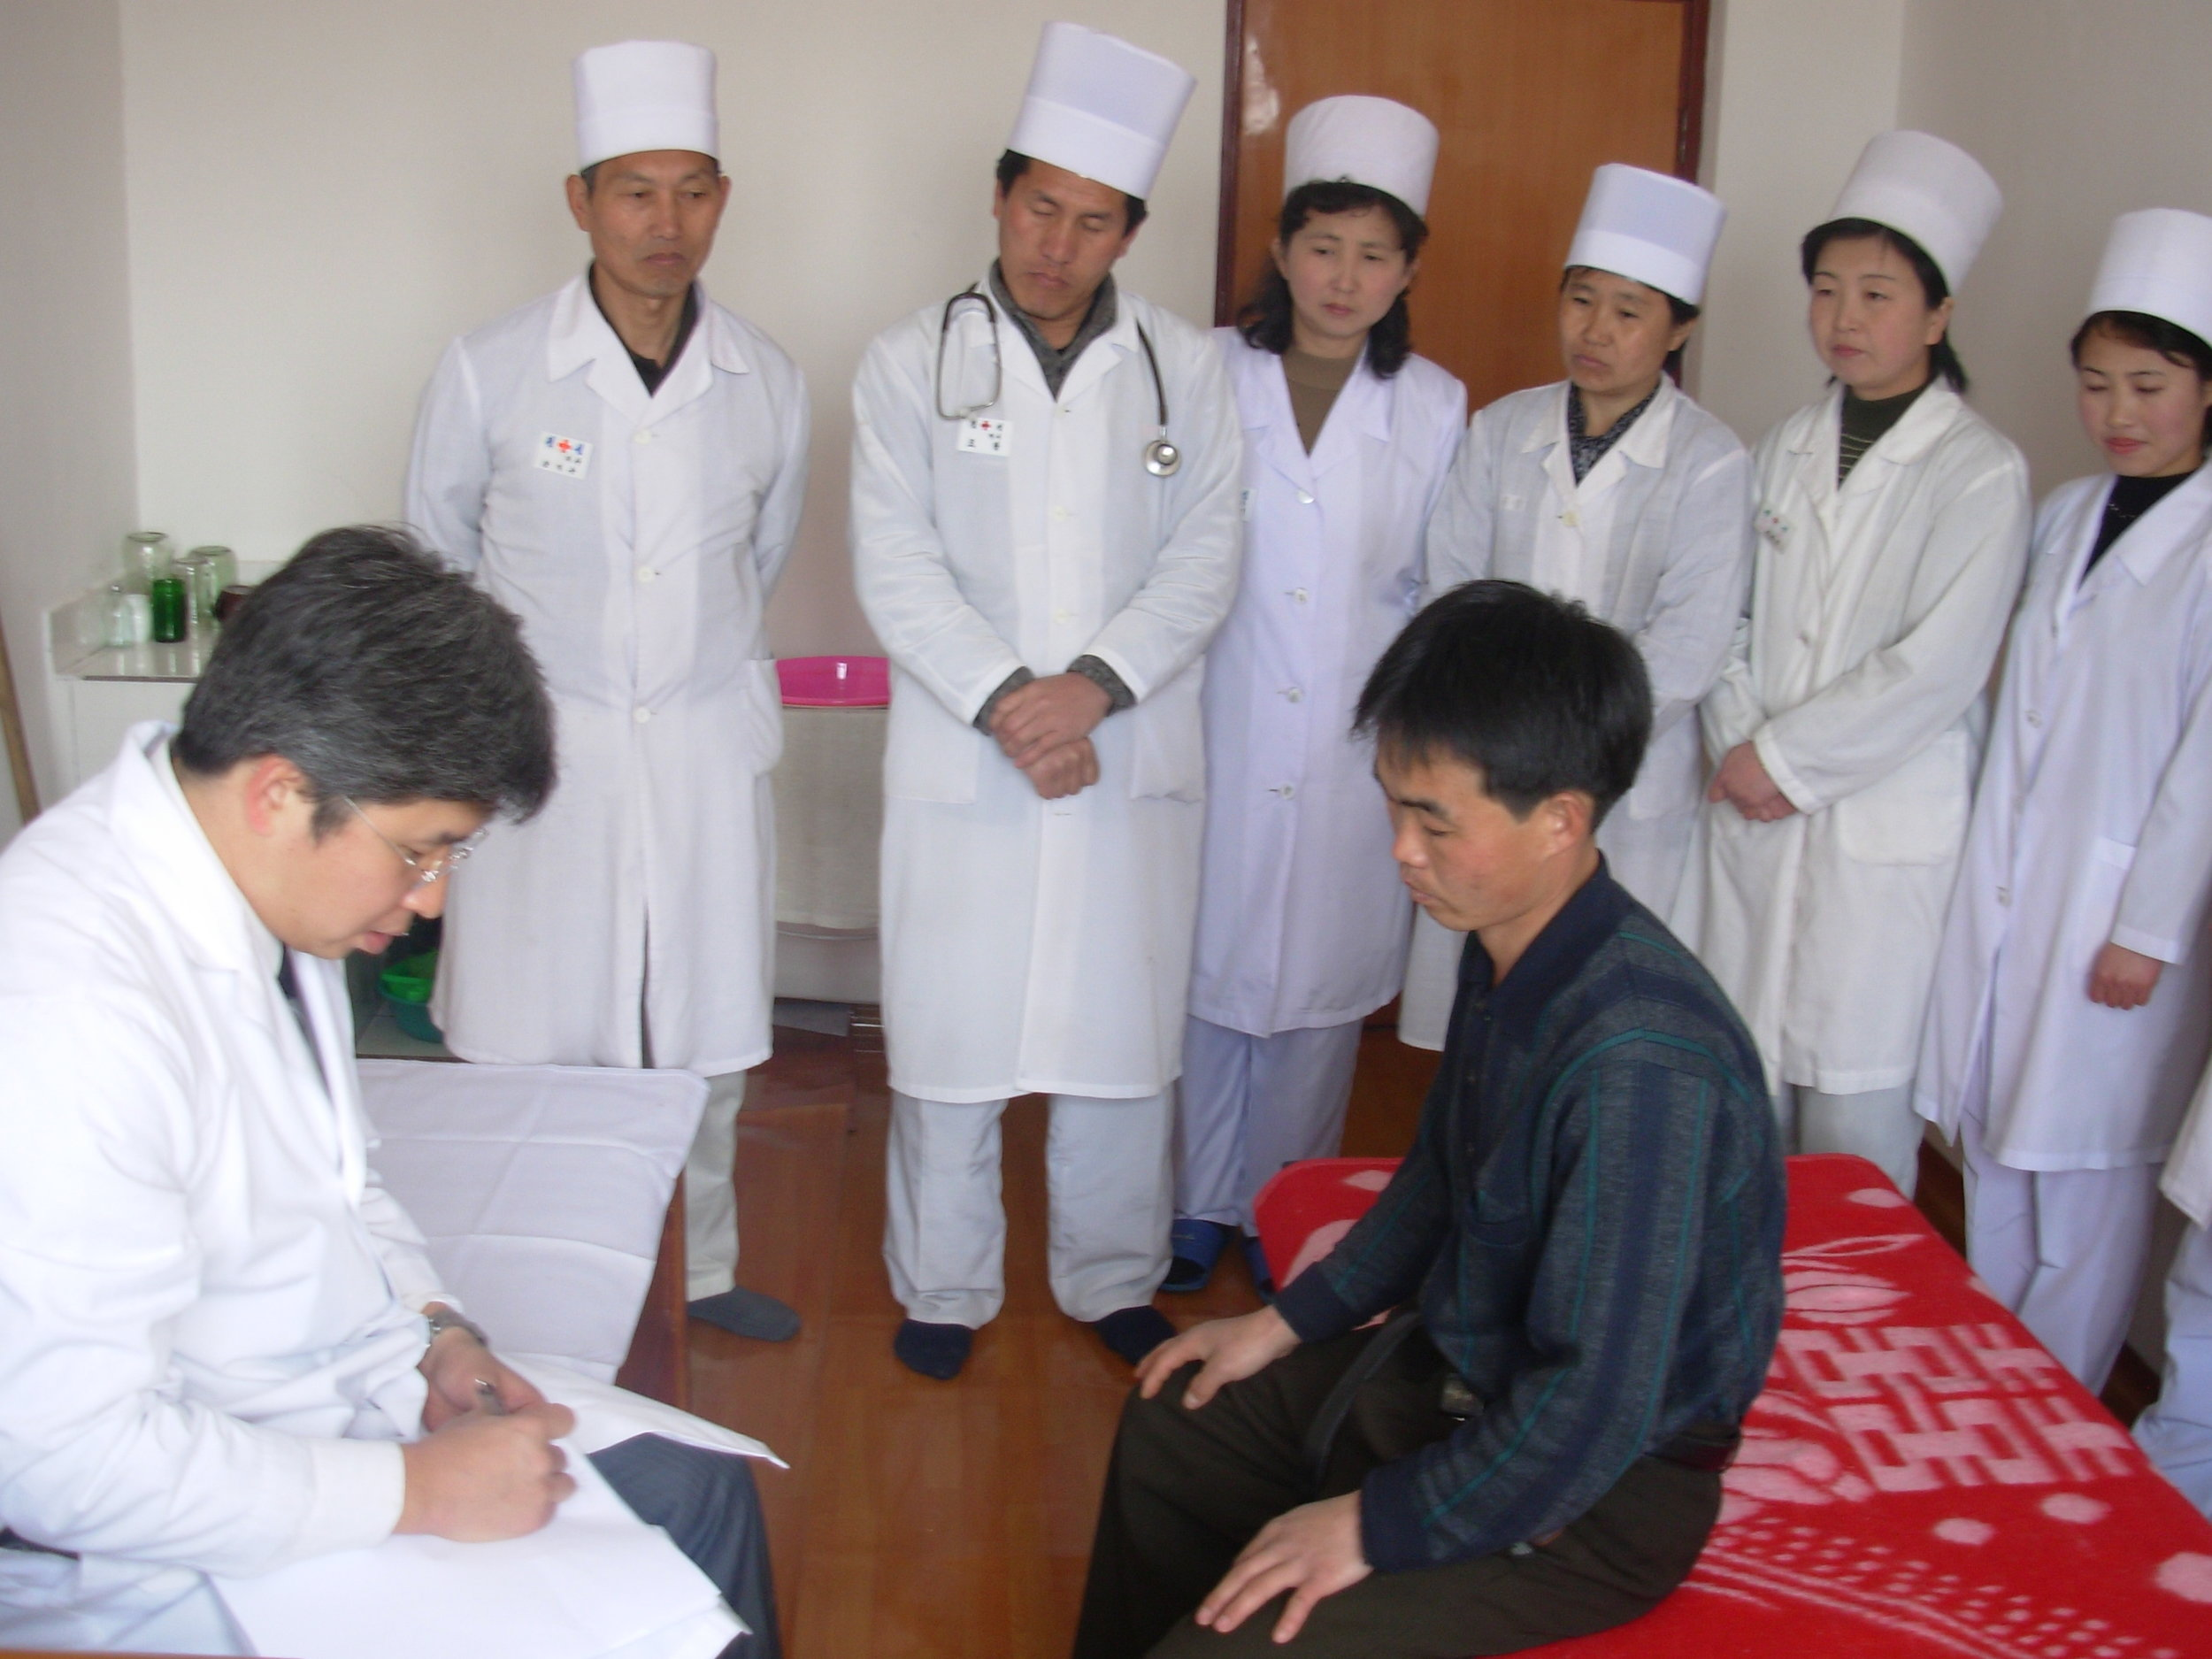 Stephen Yoon Treating Patients and Training Doctors in Northeast DPRK